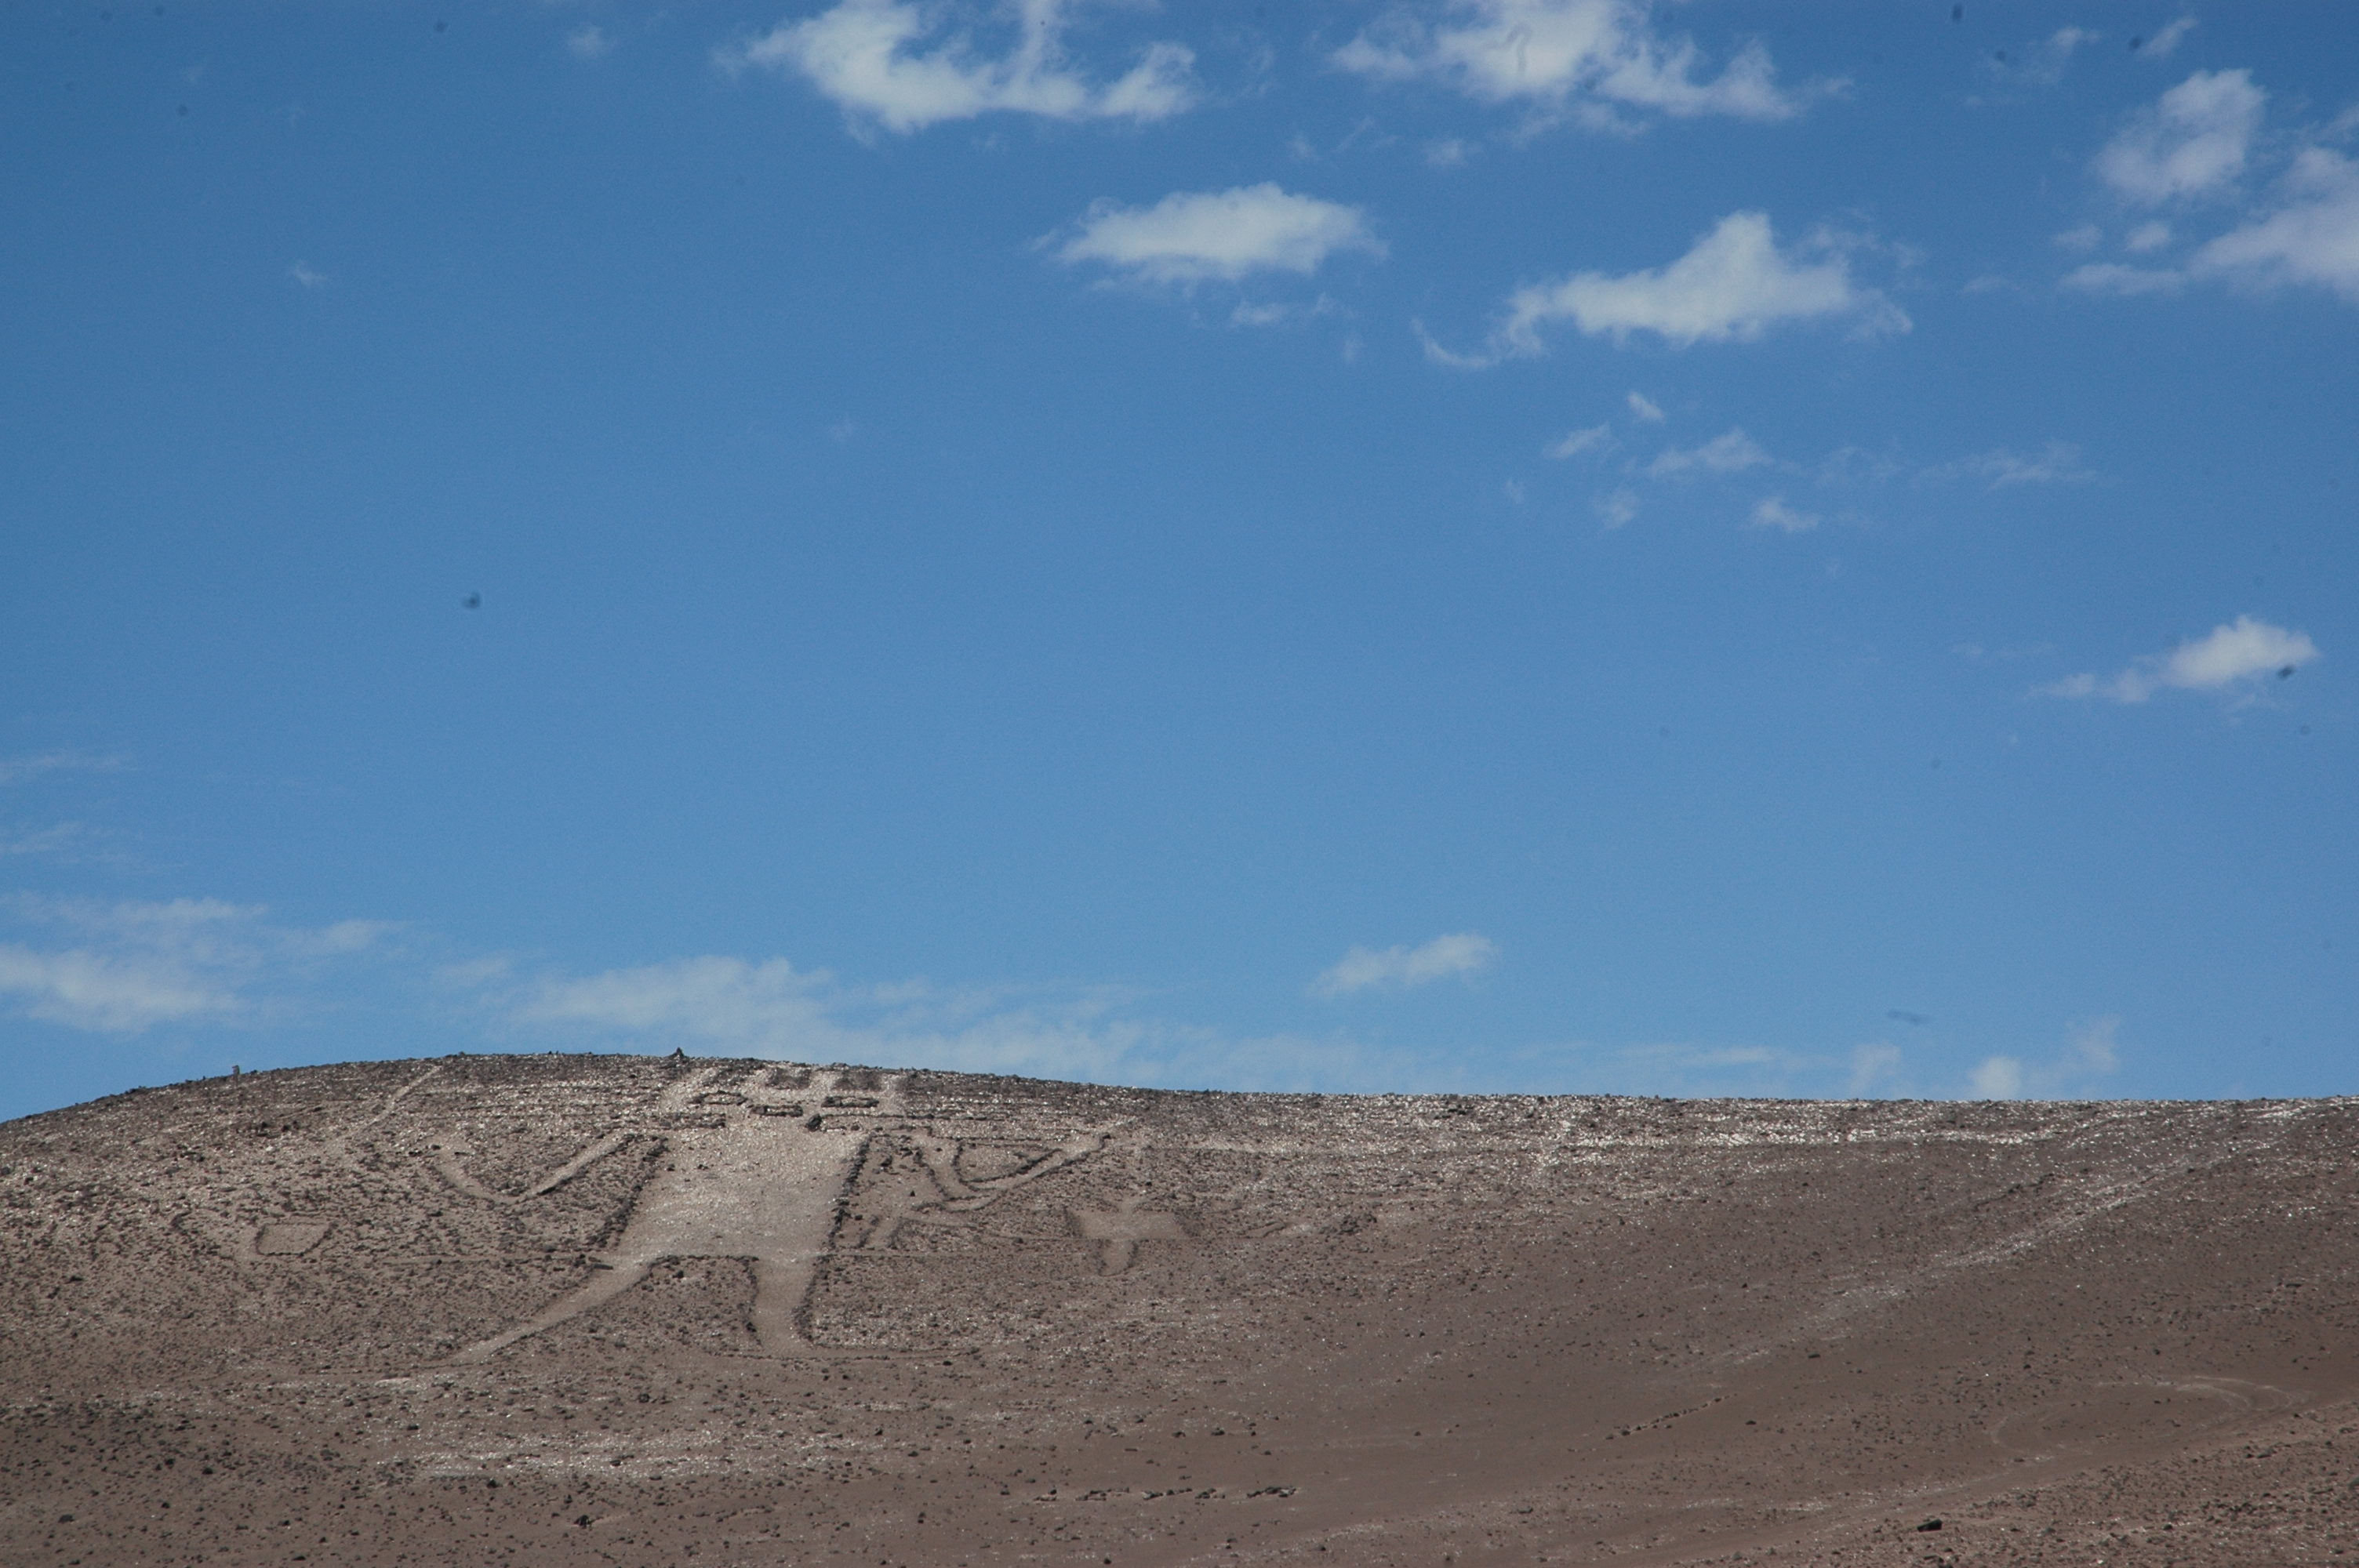 JW_SIGP_LABELS_08 The_Giant_of_Atacama 1.jpg